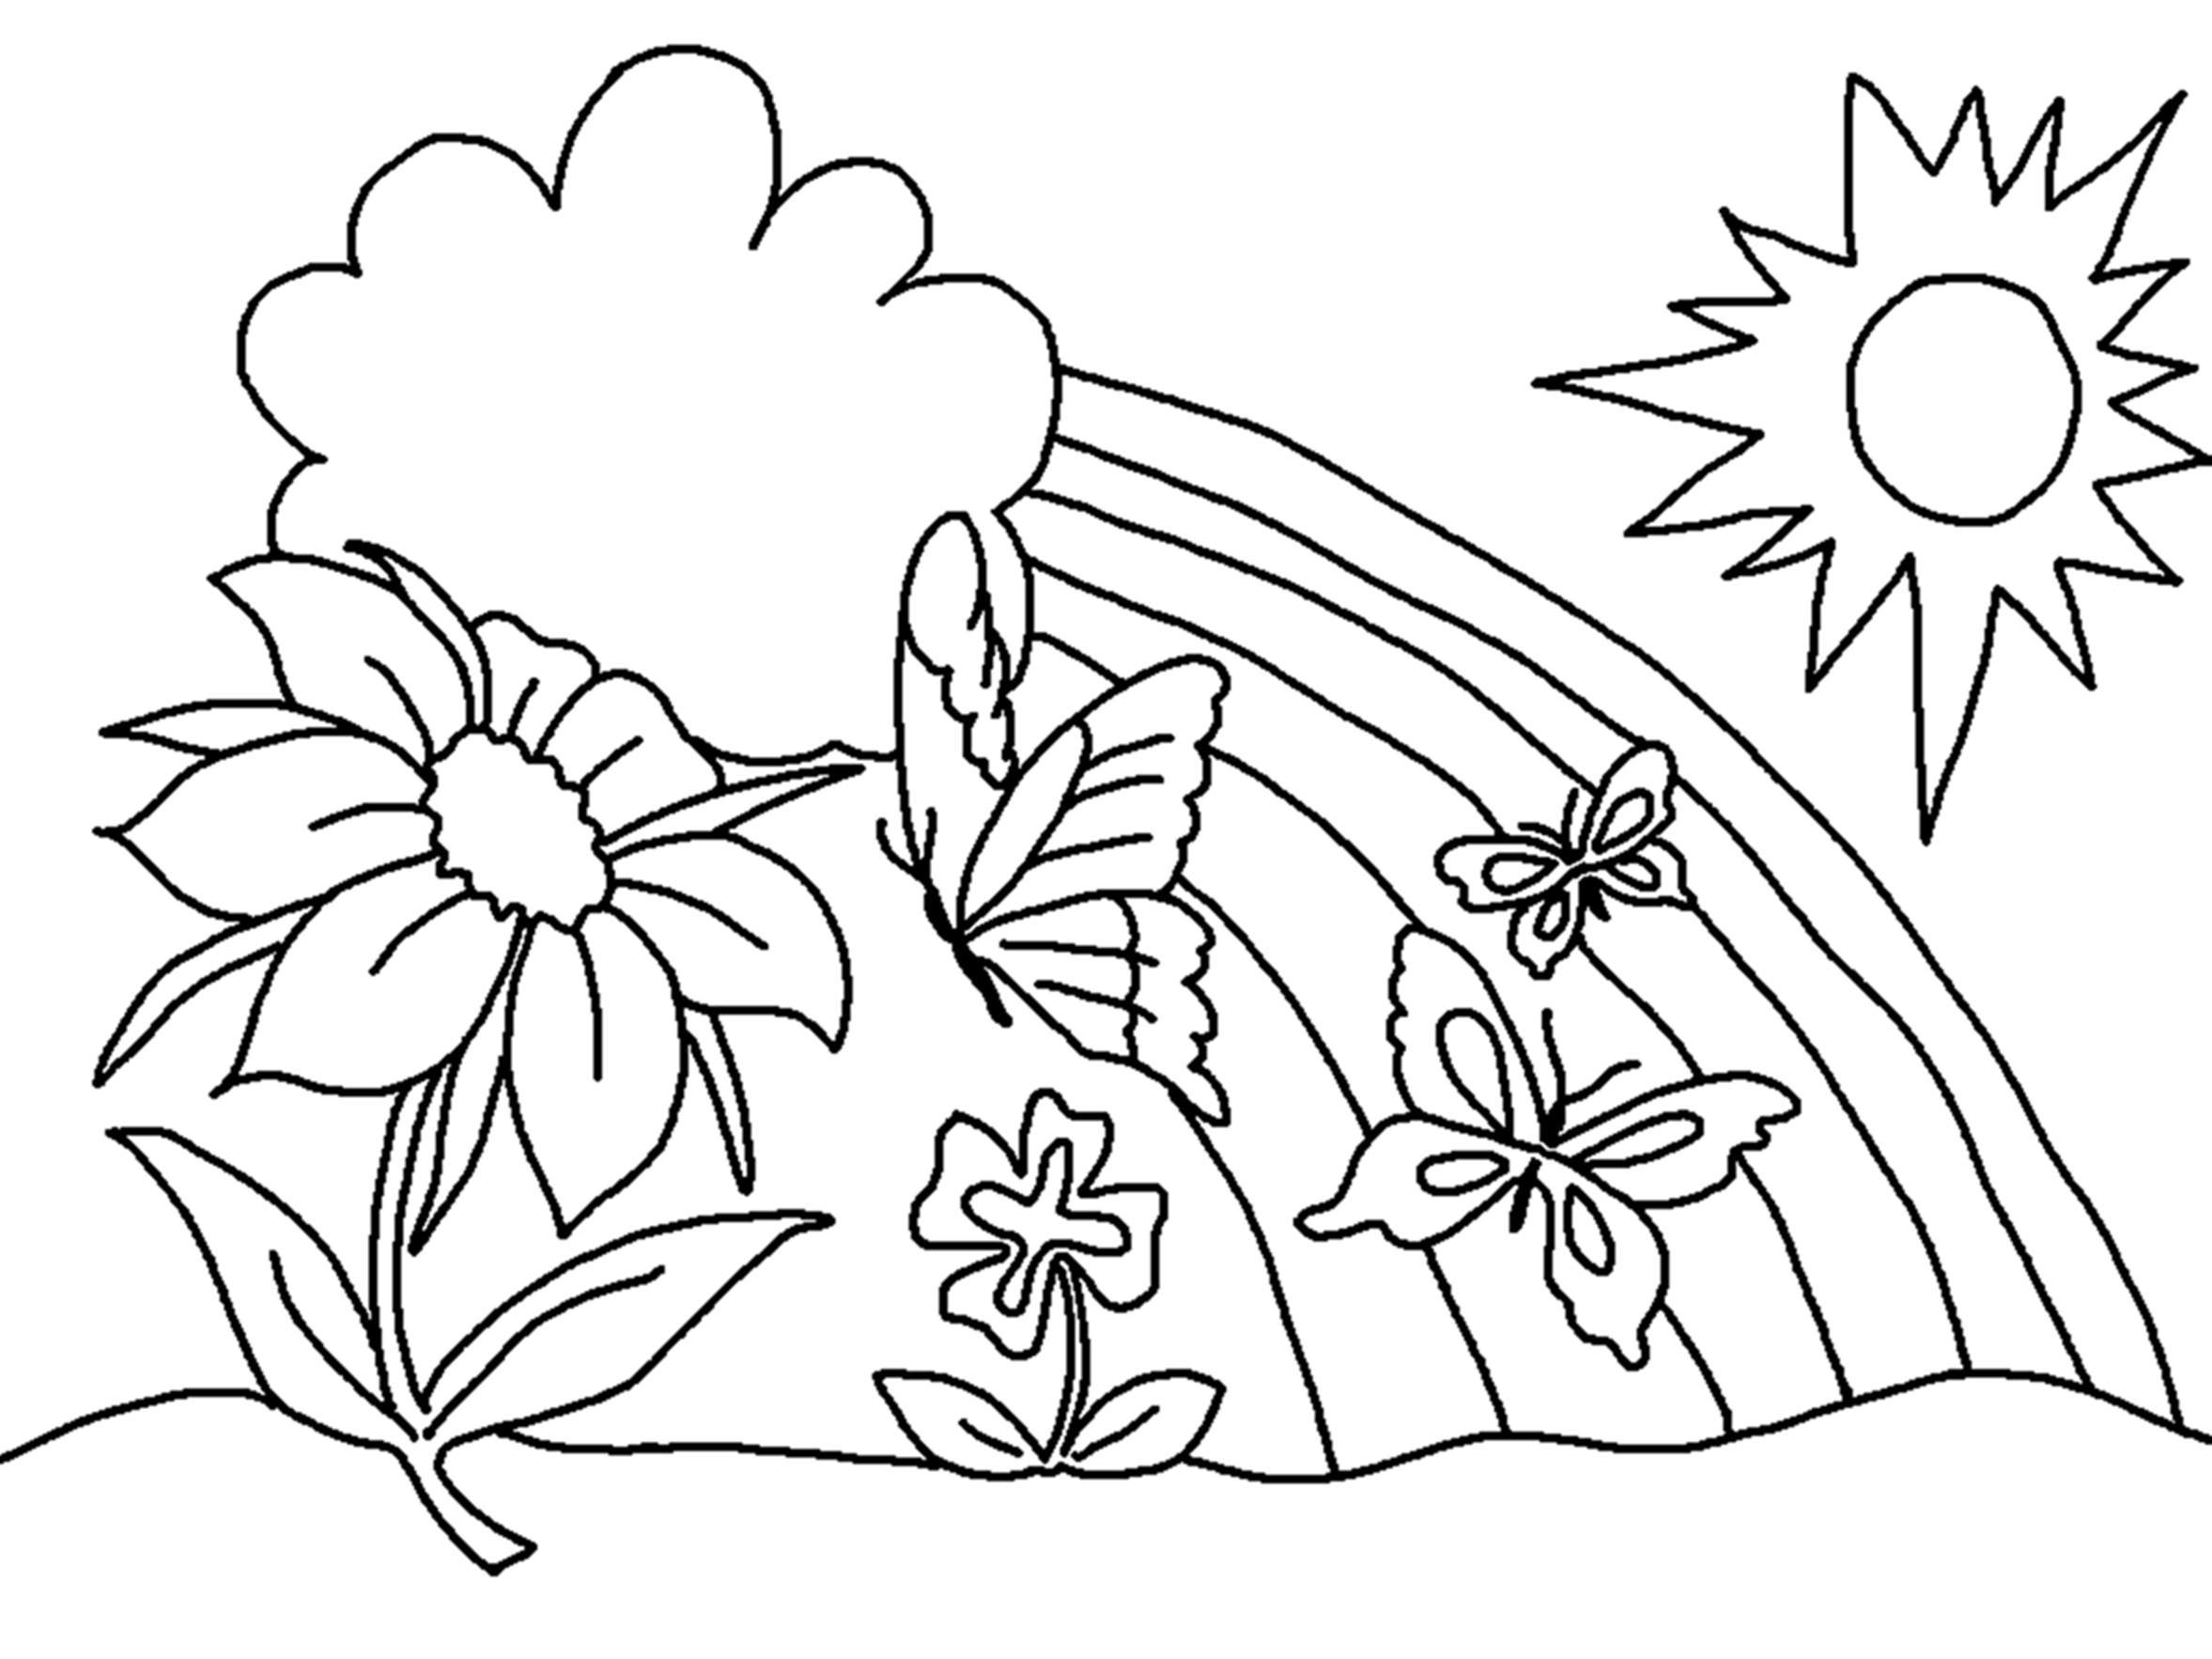 printable flowers coloring pages detailed flower coloring pages to download and print for free coloring printable flowers pages